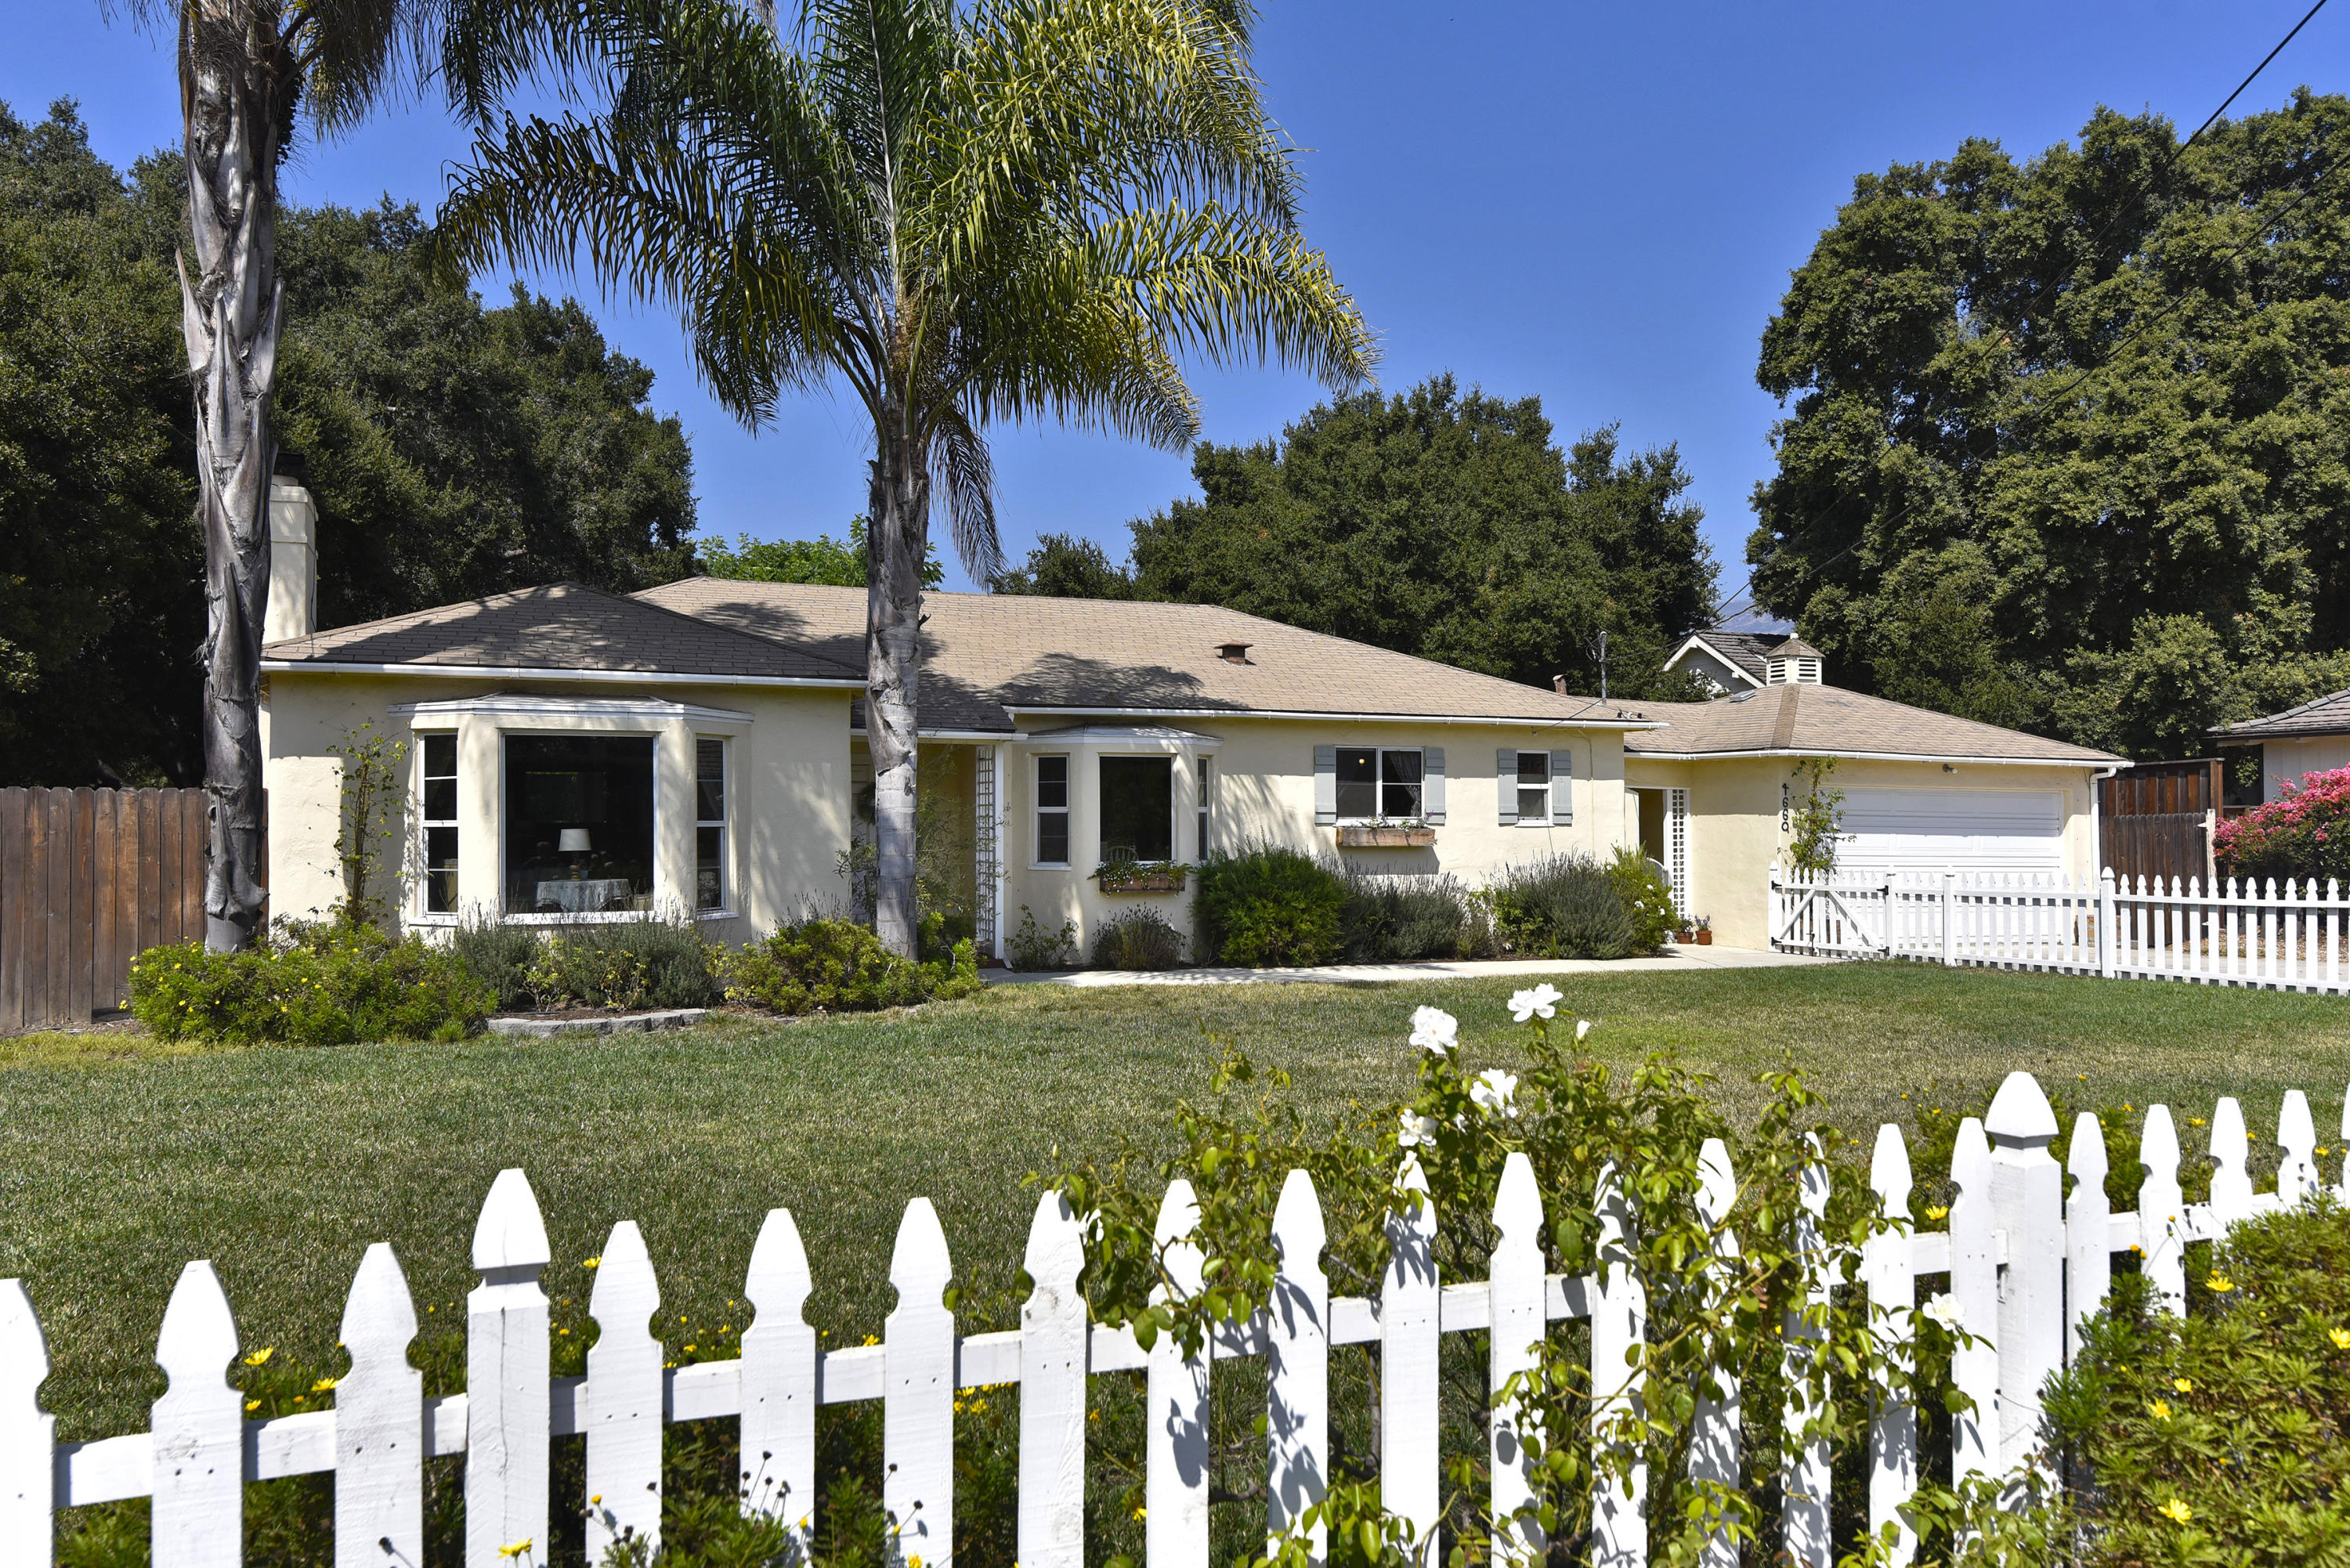 Property photo for 4660 Vista Buena Rd Santa Barbara, California 93110 - 18-3346